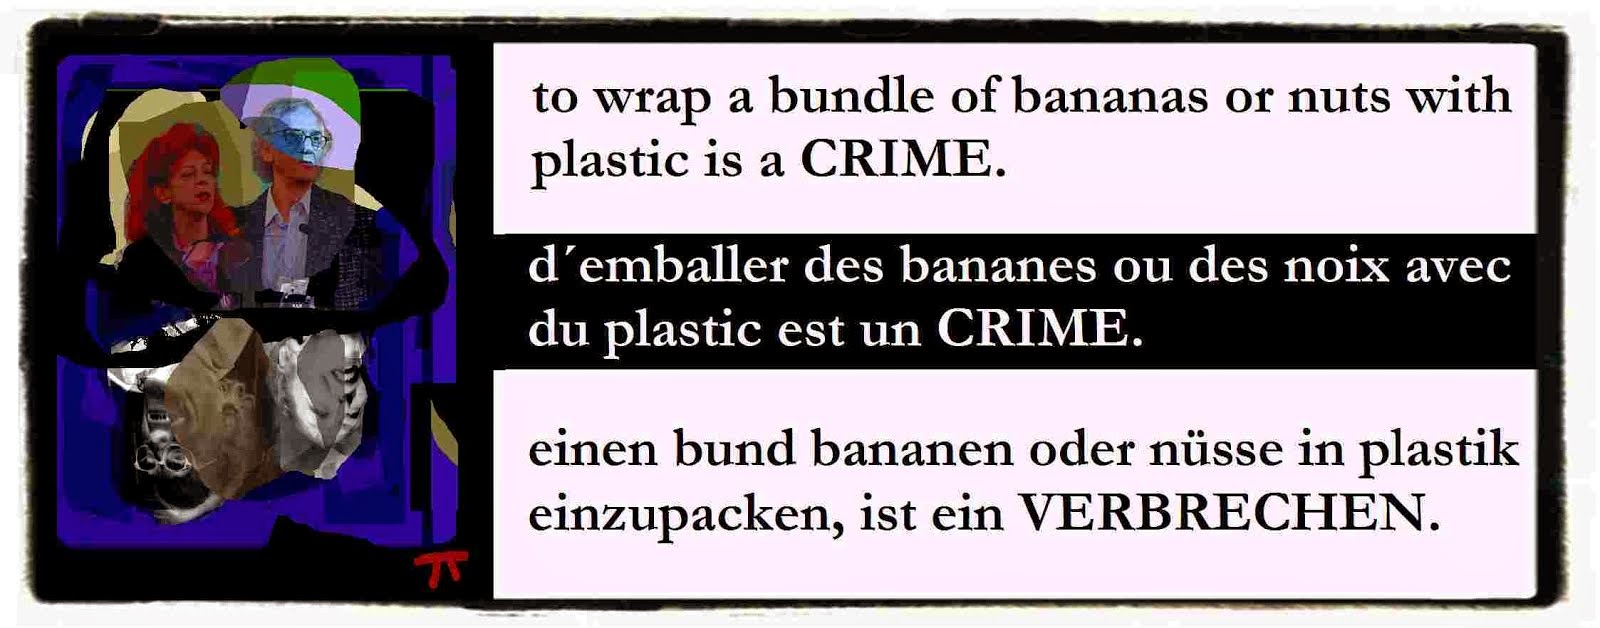 THE MENTAL REVOLUTION LA RÉVOLUTION MENTALE DIE GEISTIGE REVOLUTION war against plastic wrapping